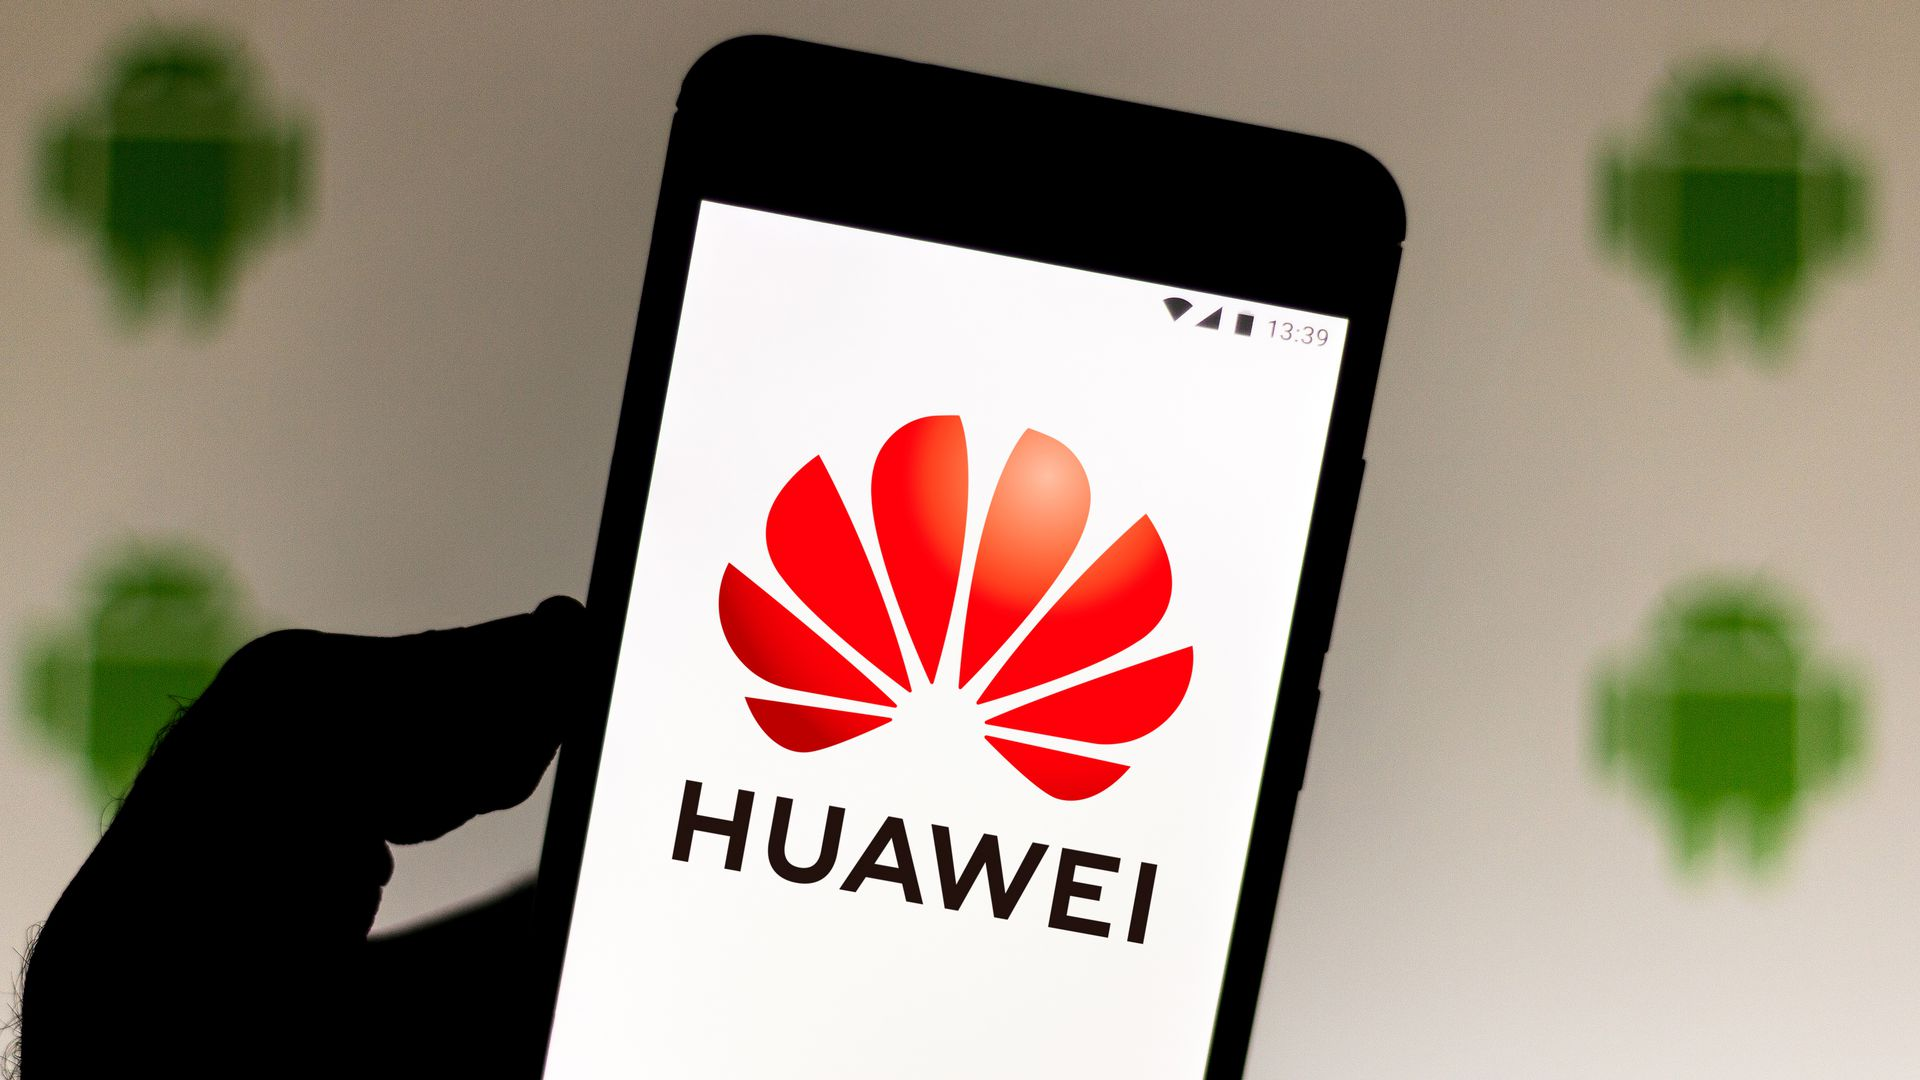 The Huawei logo on a phone.